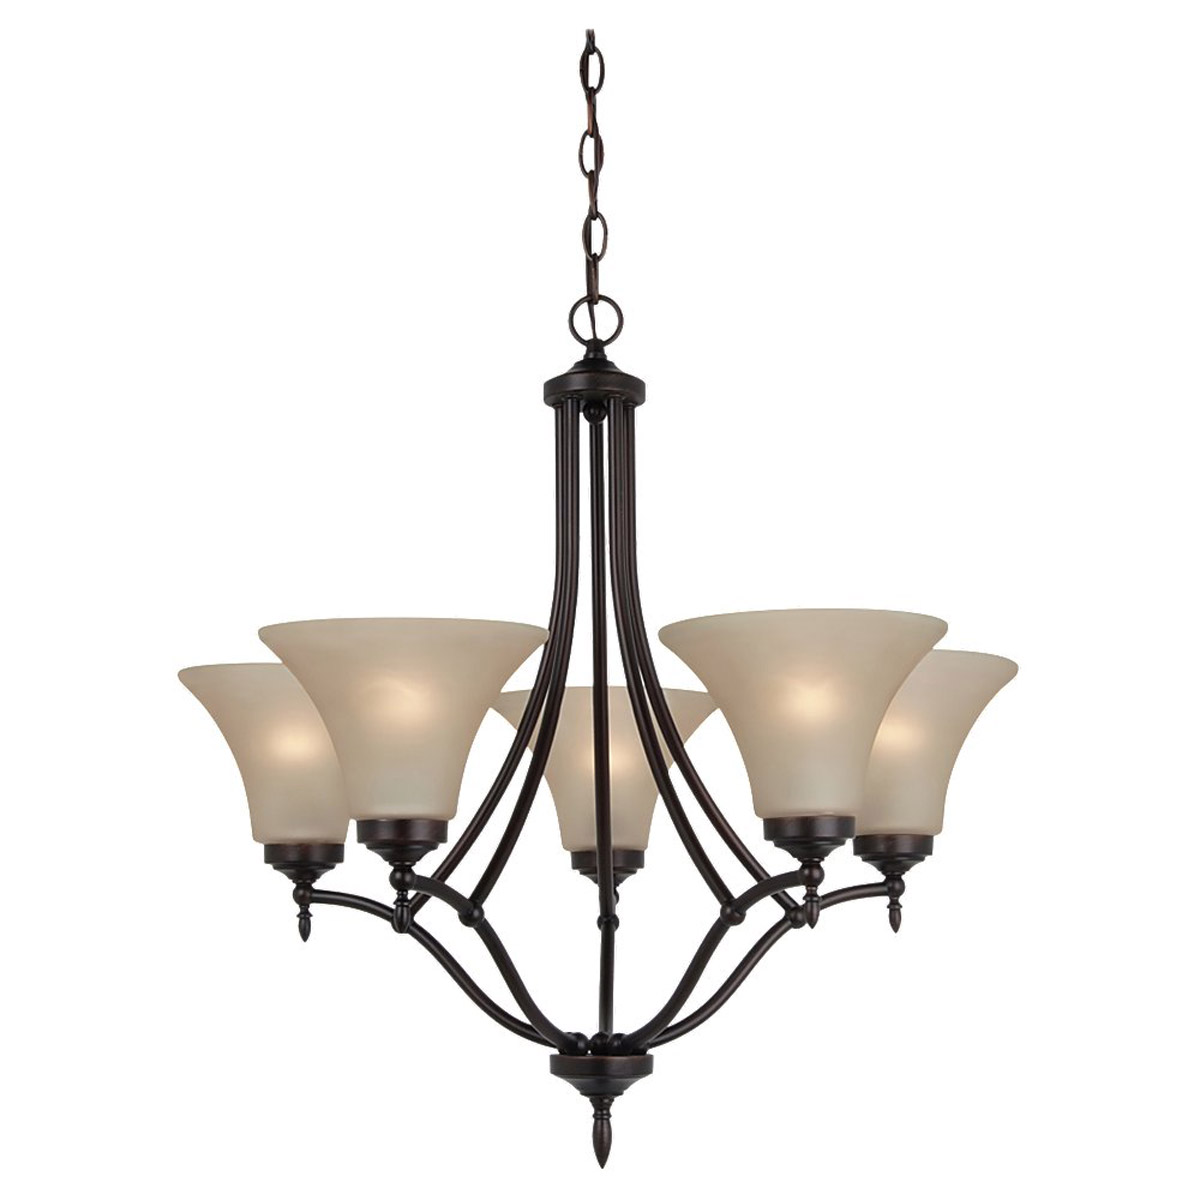 Sea Gull Lighting Montreal 5 Light Chandelier in Burnt Sienna 31181-710